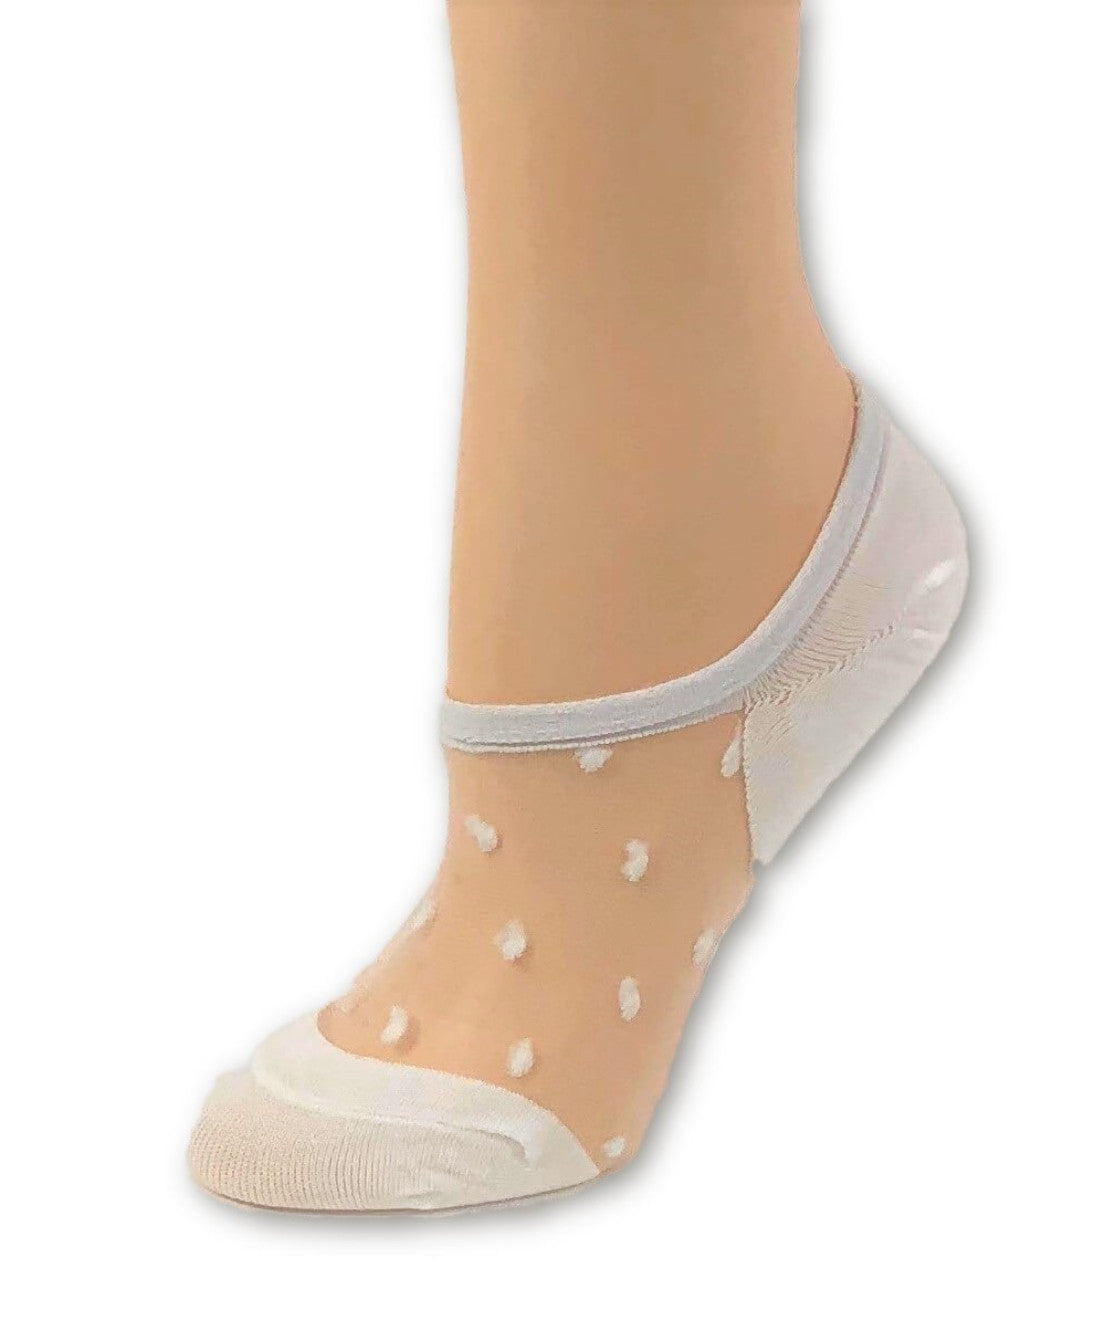 Stylish White Dotted Ankle Sheer Socks - Global Trendz Fashion®